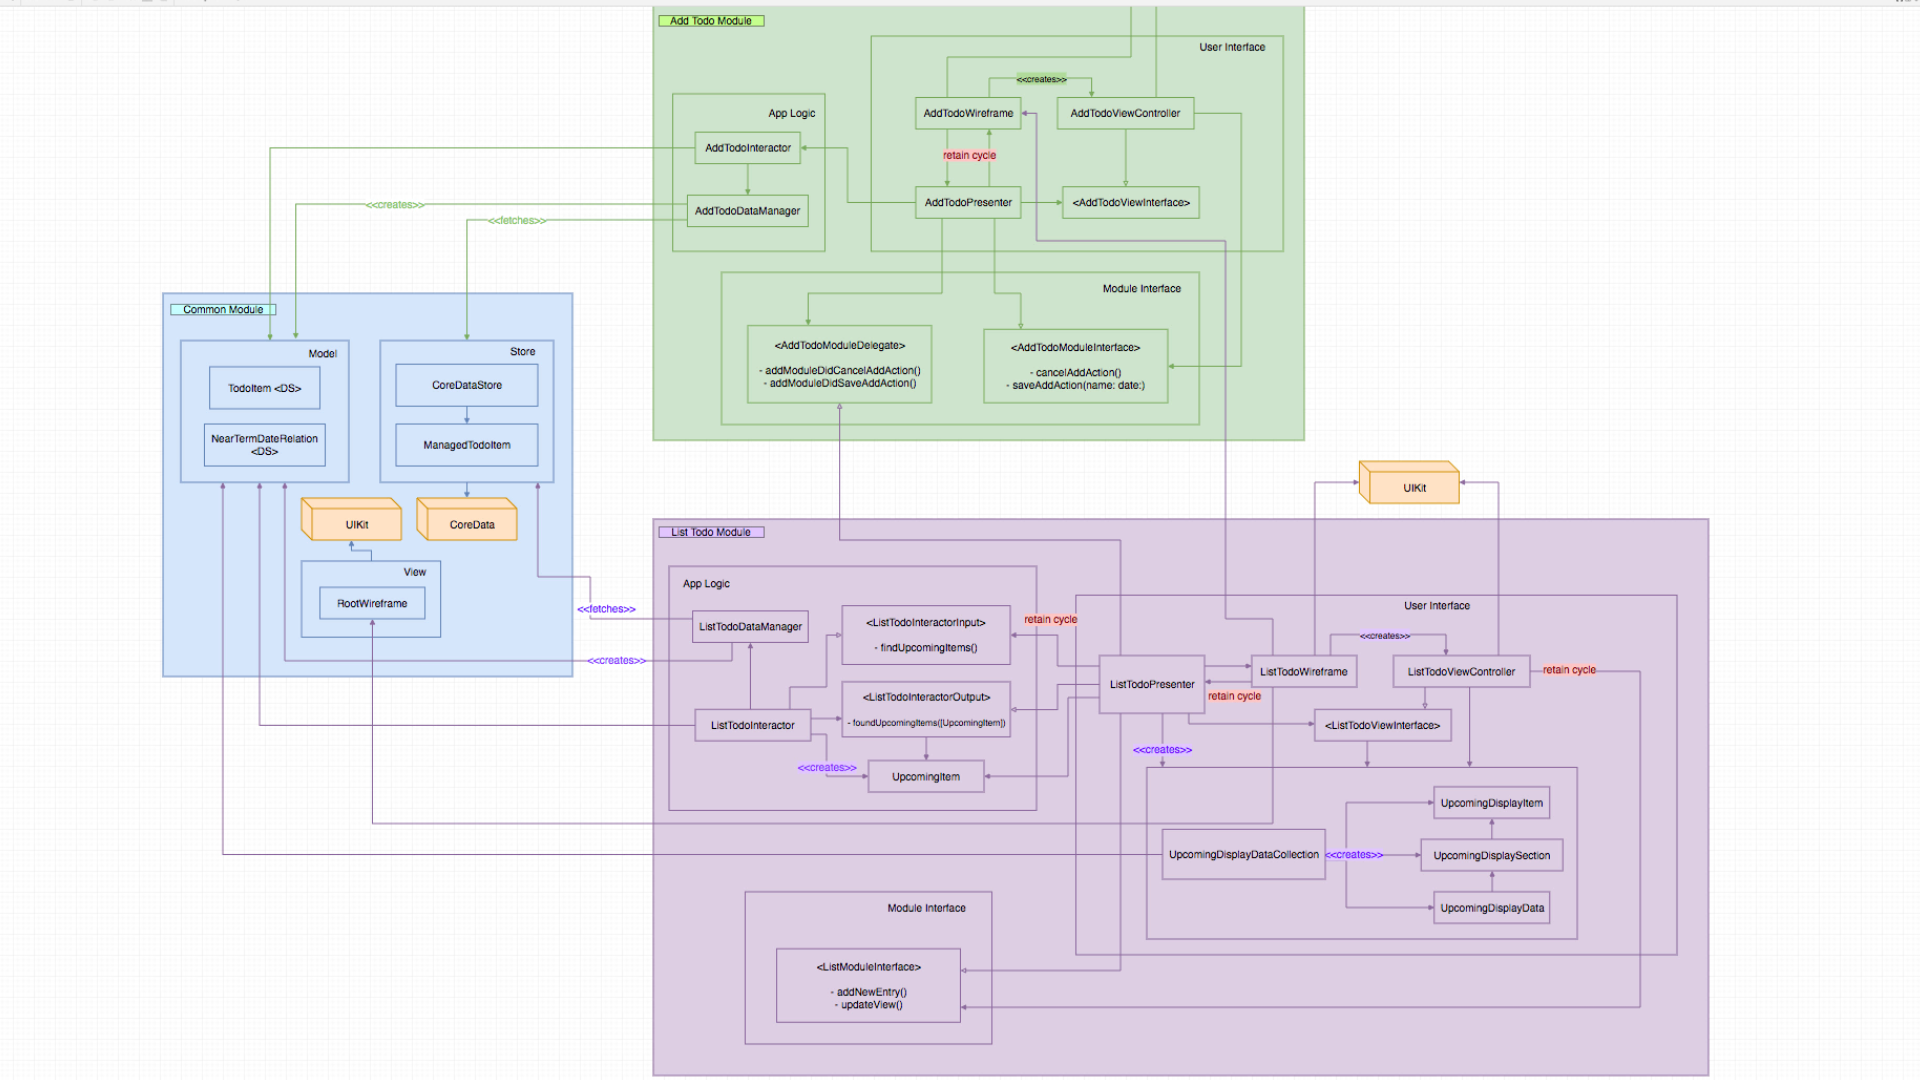 Todo List sample project  class and module dependencies diagram.